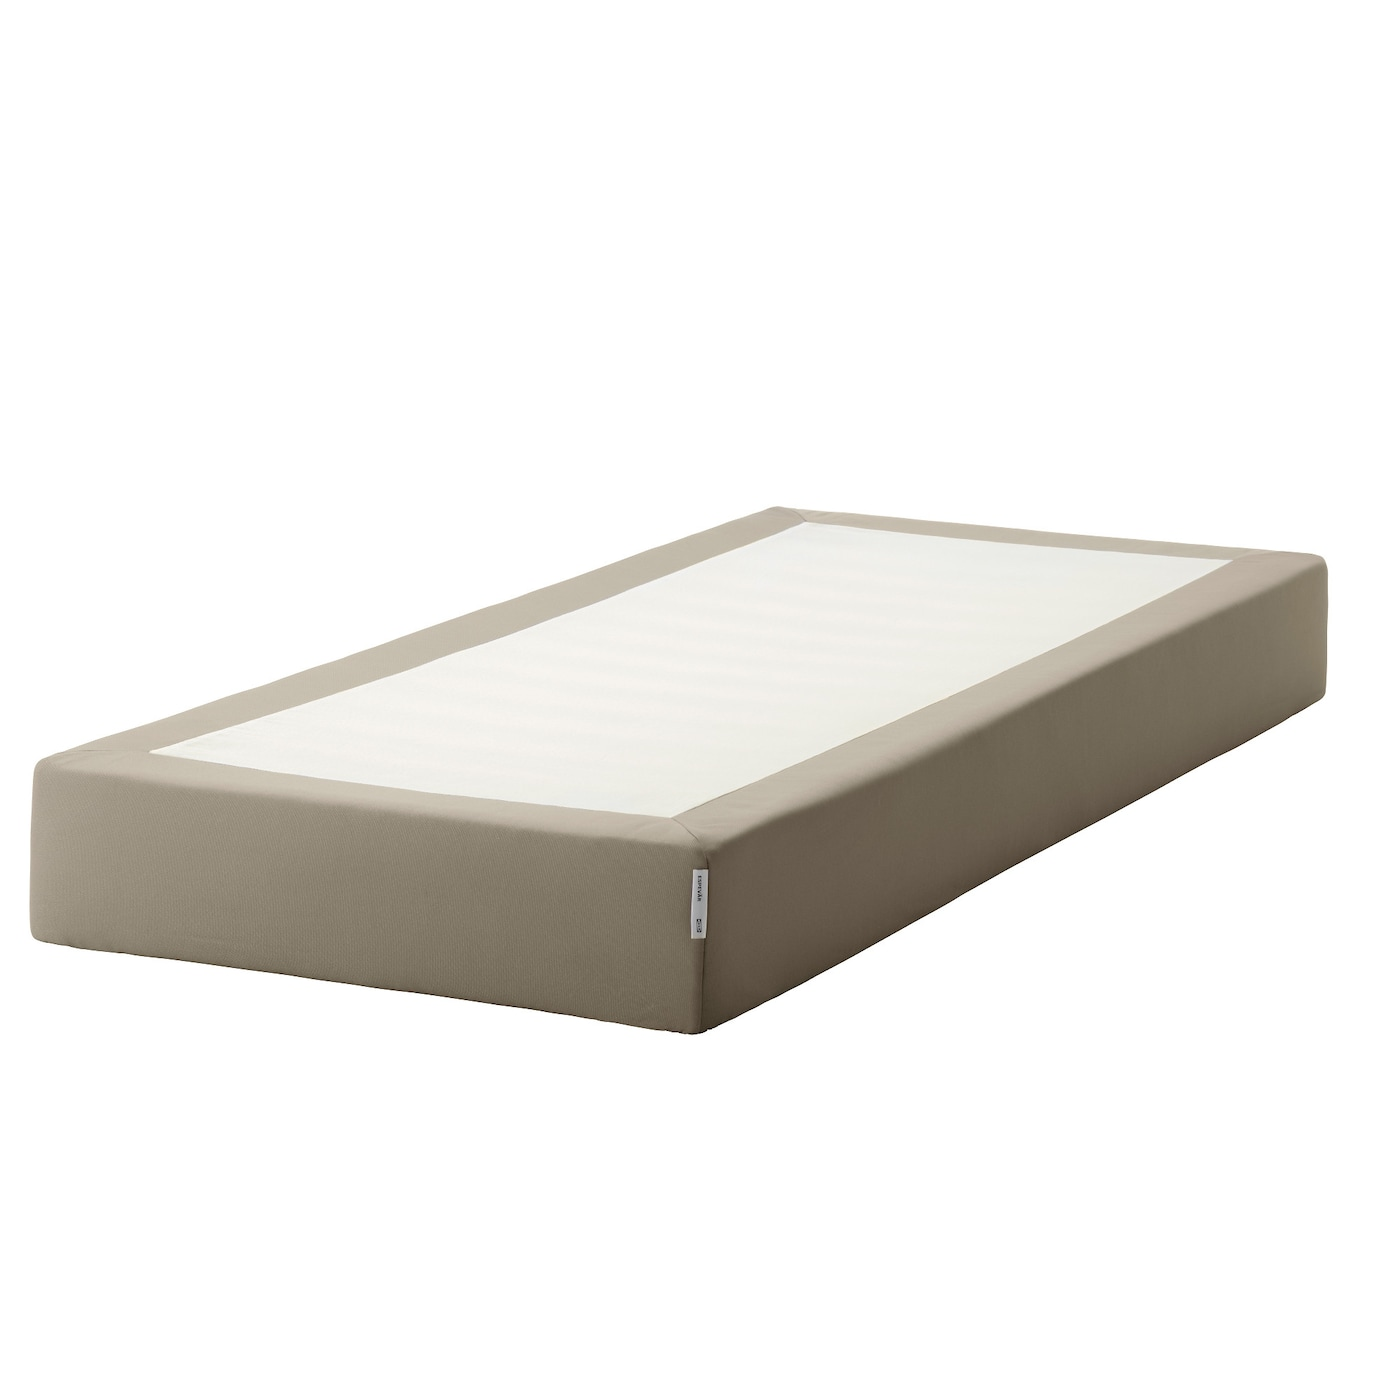 Ikea Toddler Bed Mattress Pad ~ IKEA ESPEVÄR slatted mattress base Easy to transport, as the mattress